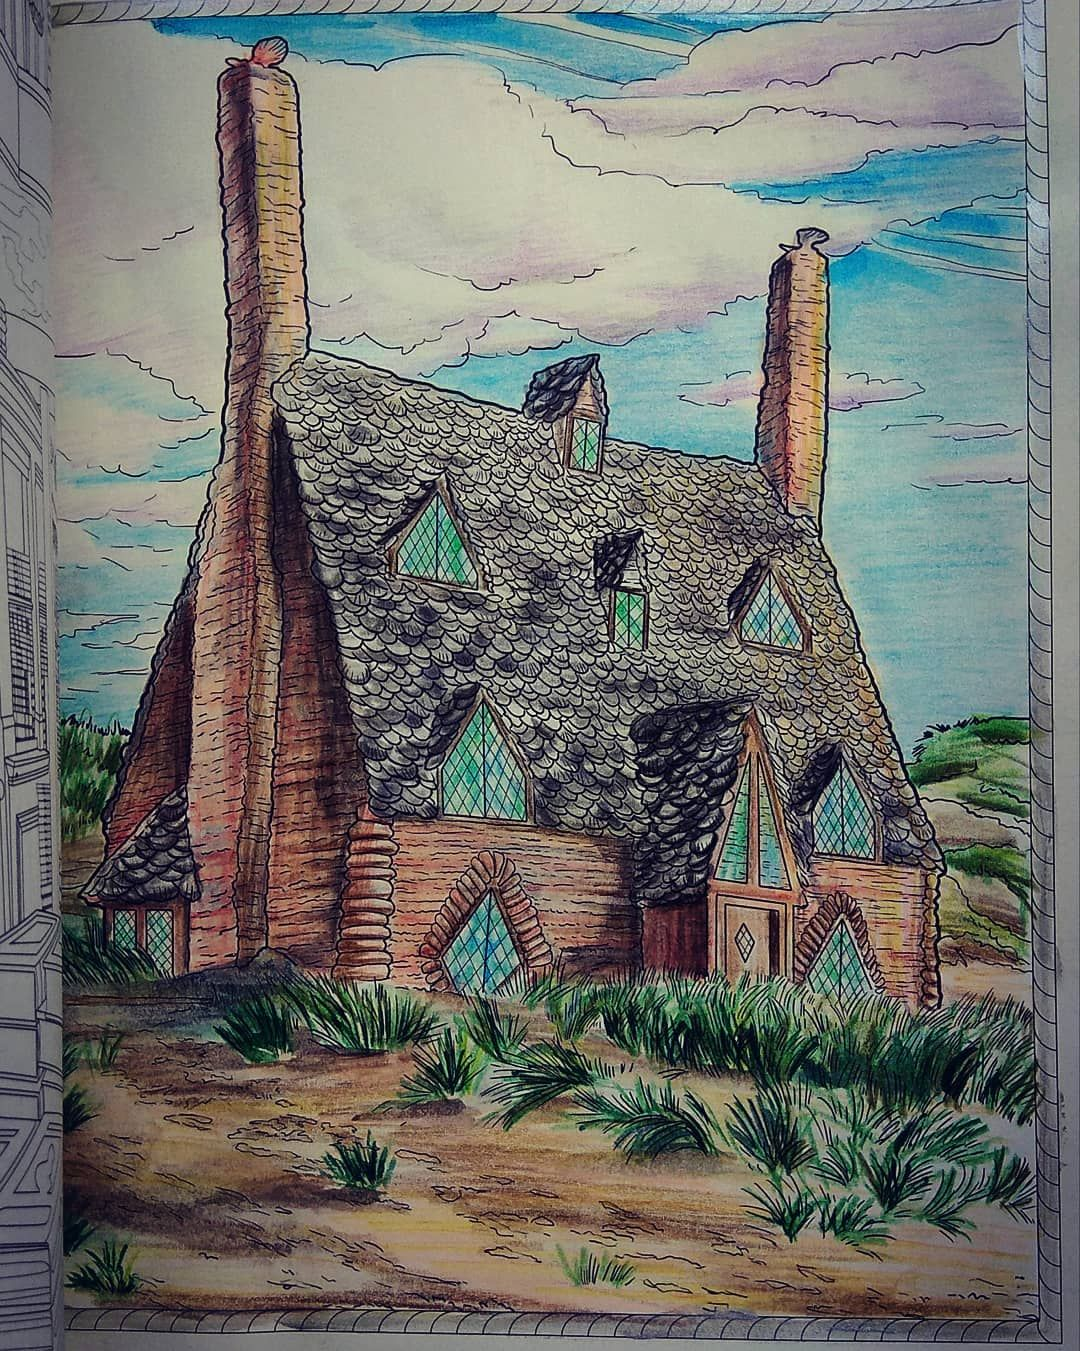 #harrypotter #harrypottercolouringbook #shellcottage by ...